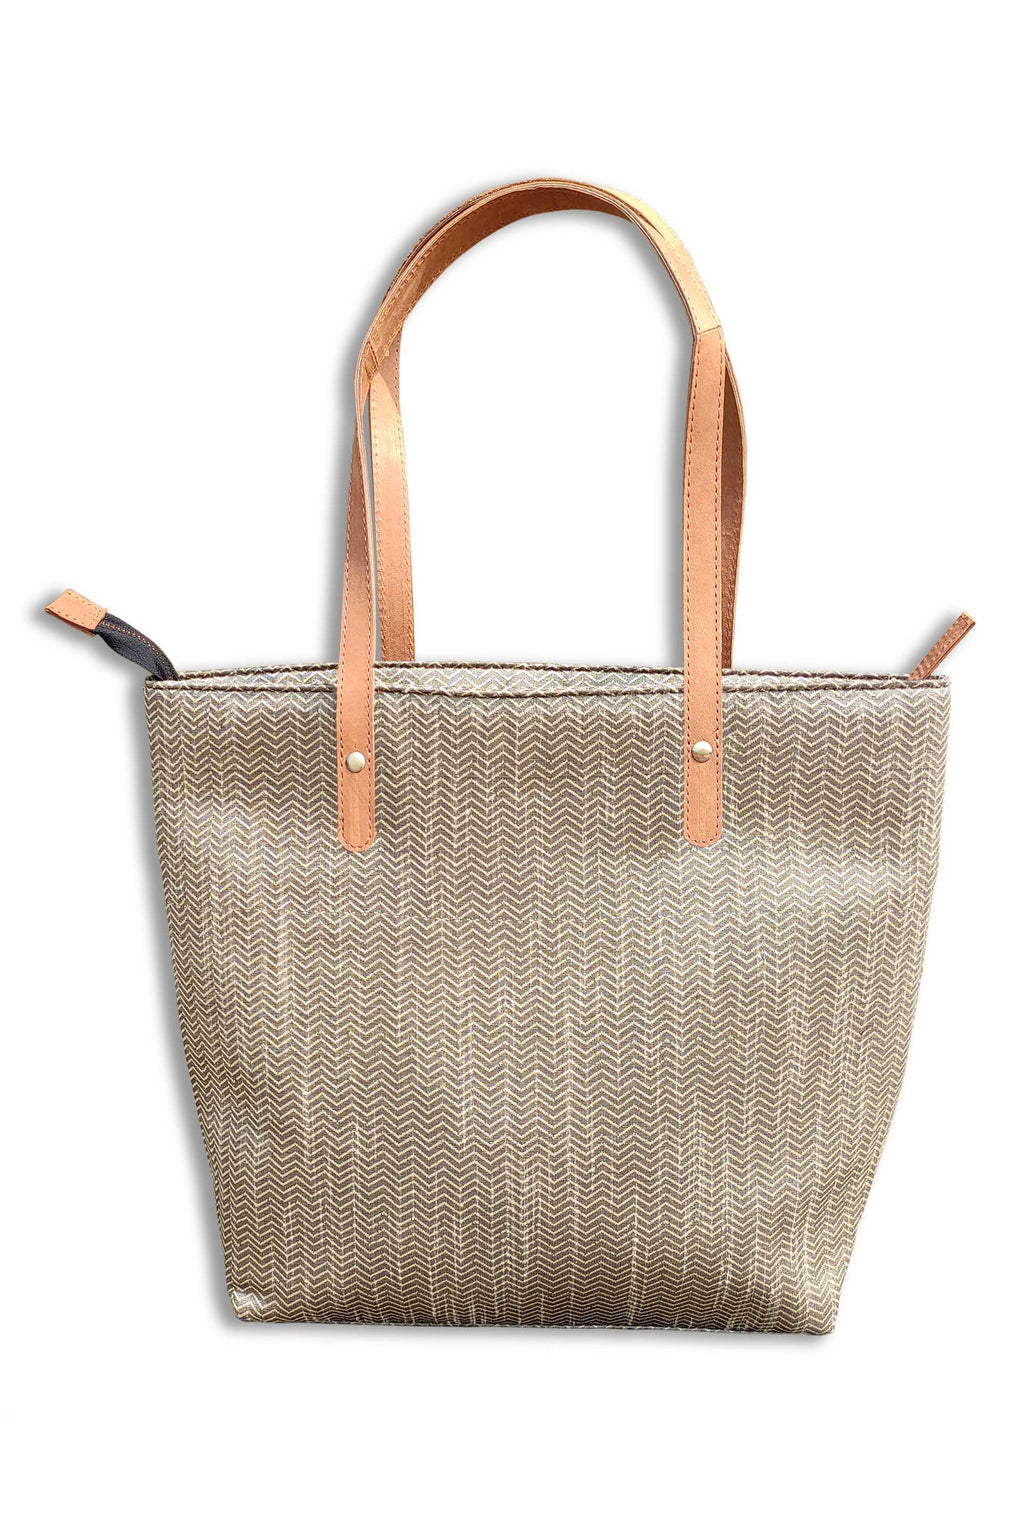 Silk Silver Tote Bag with Leather Handle